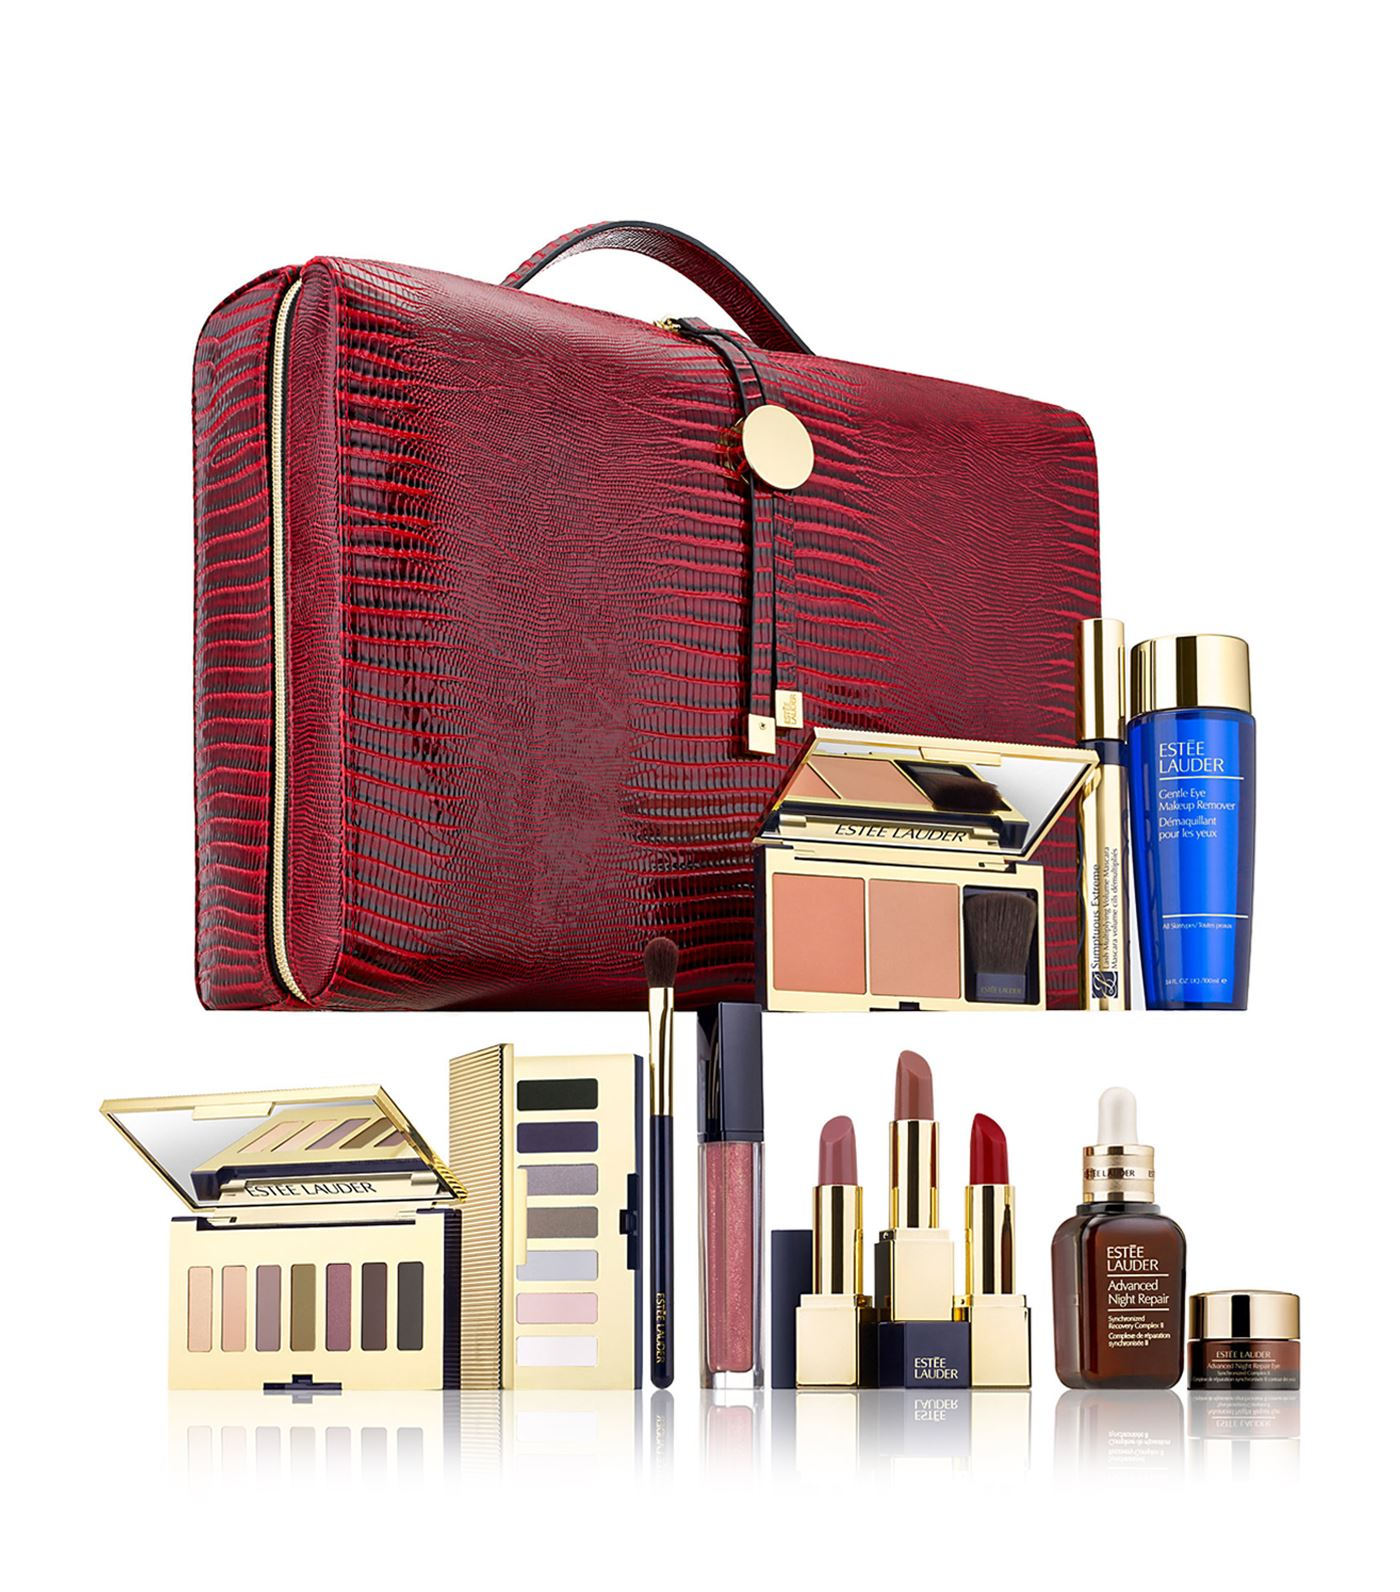 Shopping Tips for Estee Lauder: 1. If you're buying a gift, you can get free gift wrap and gift cards with every order. 2. There is no sale tax added when you purchase eGift Certificates.